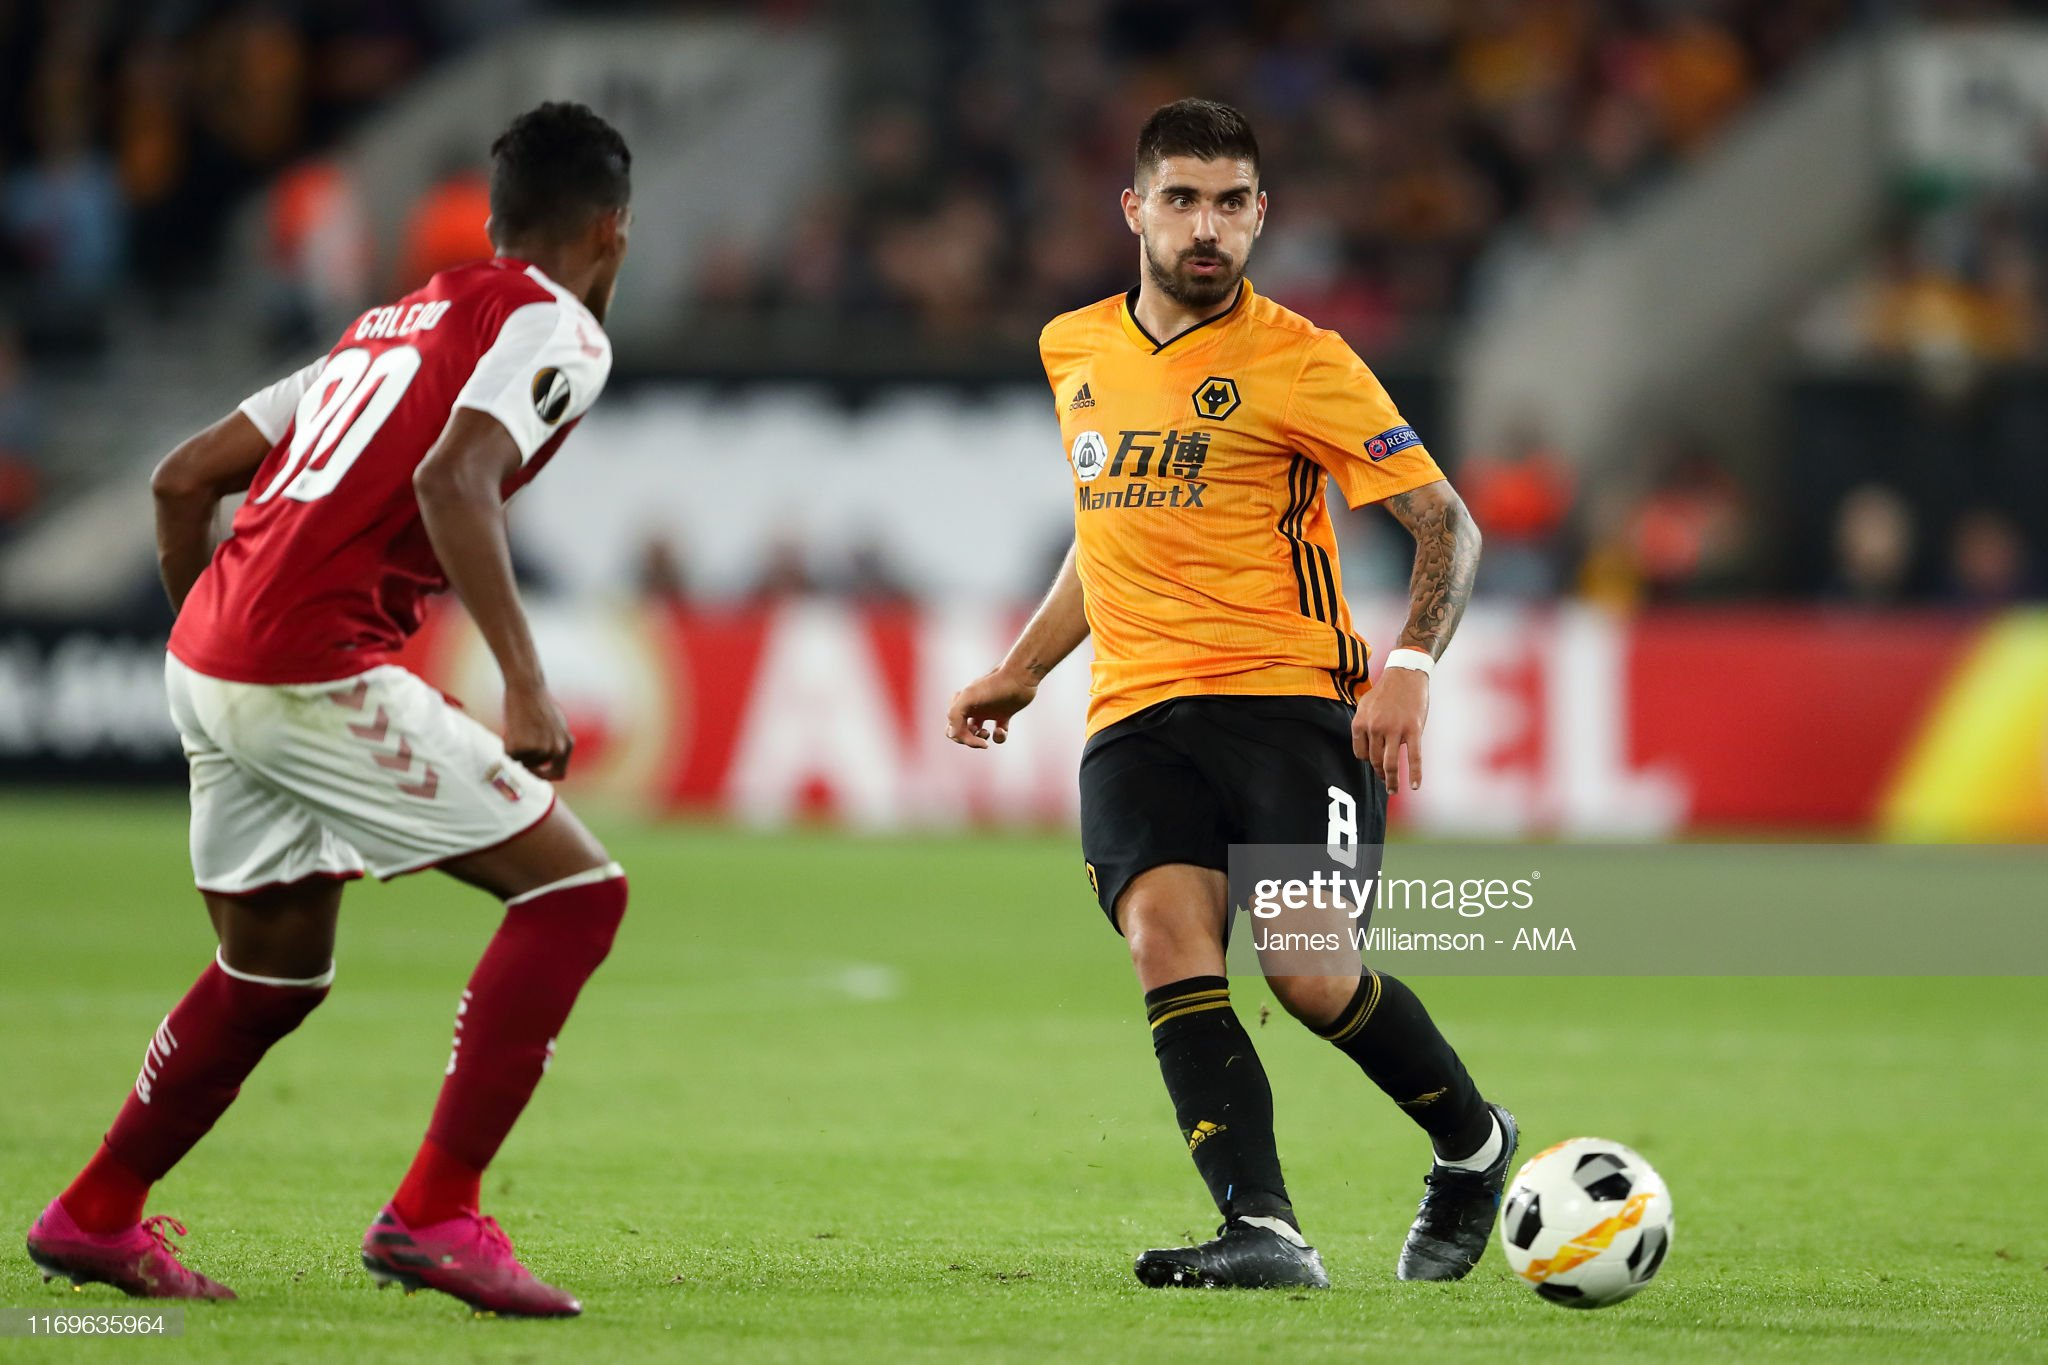 Braga v Wolves preview, prediction and odds